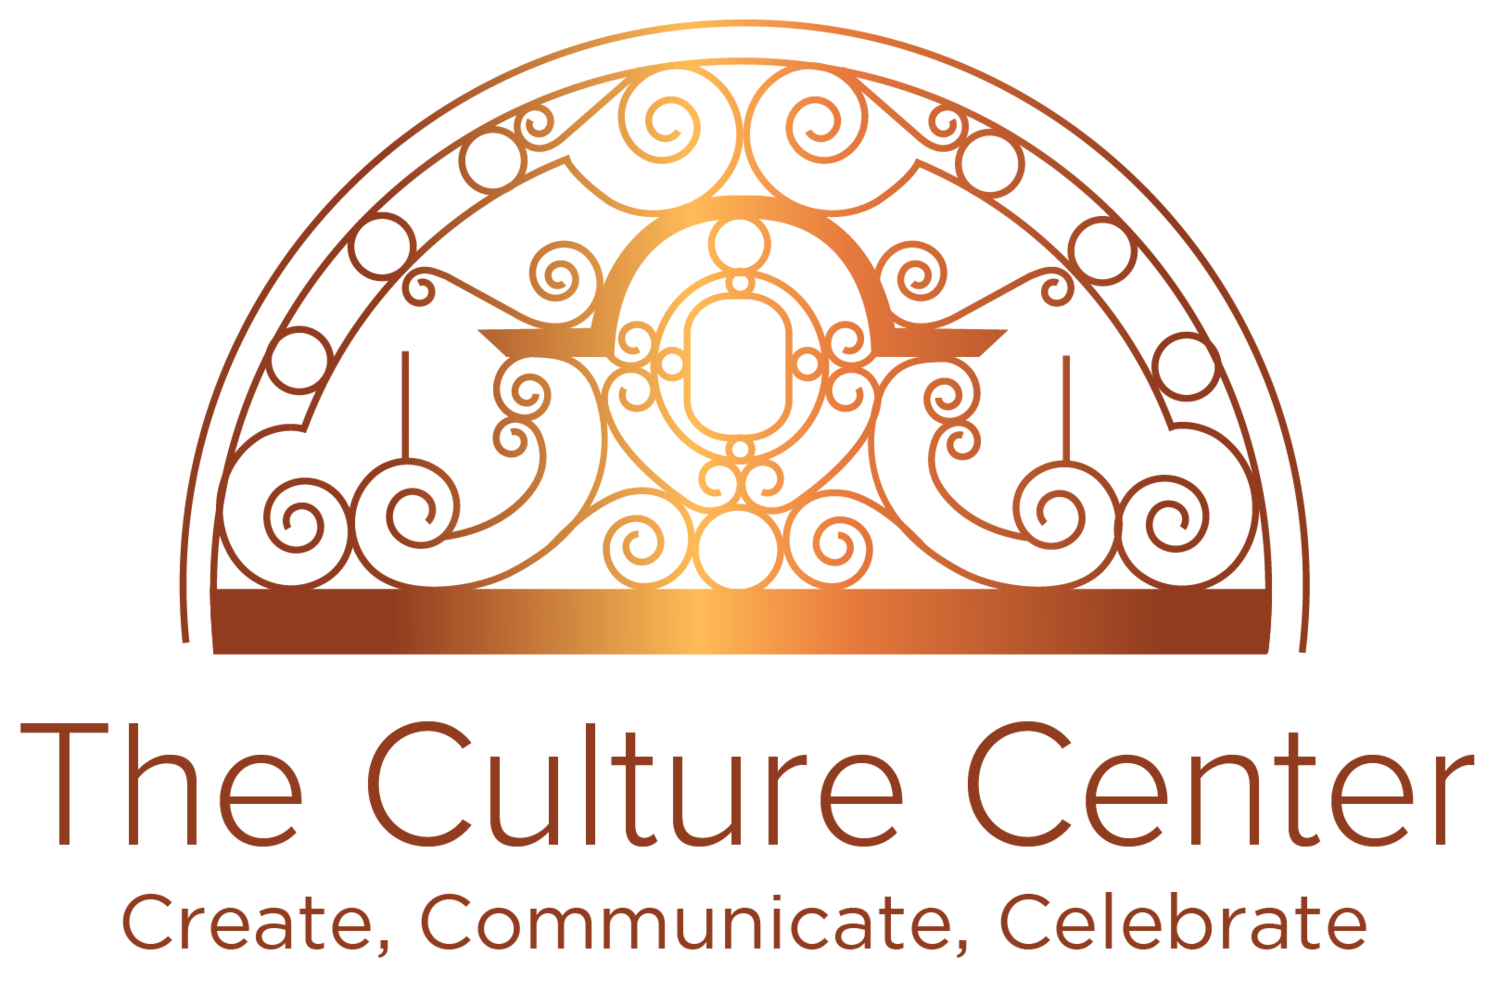 The Culture Center